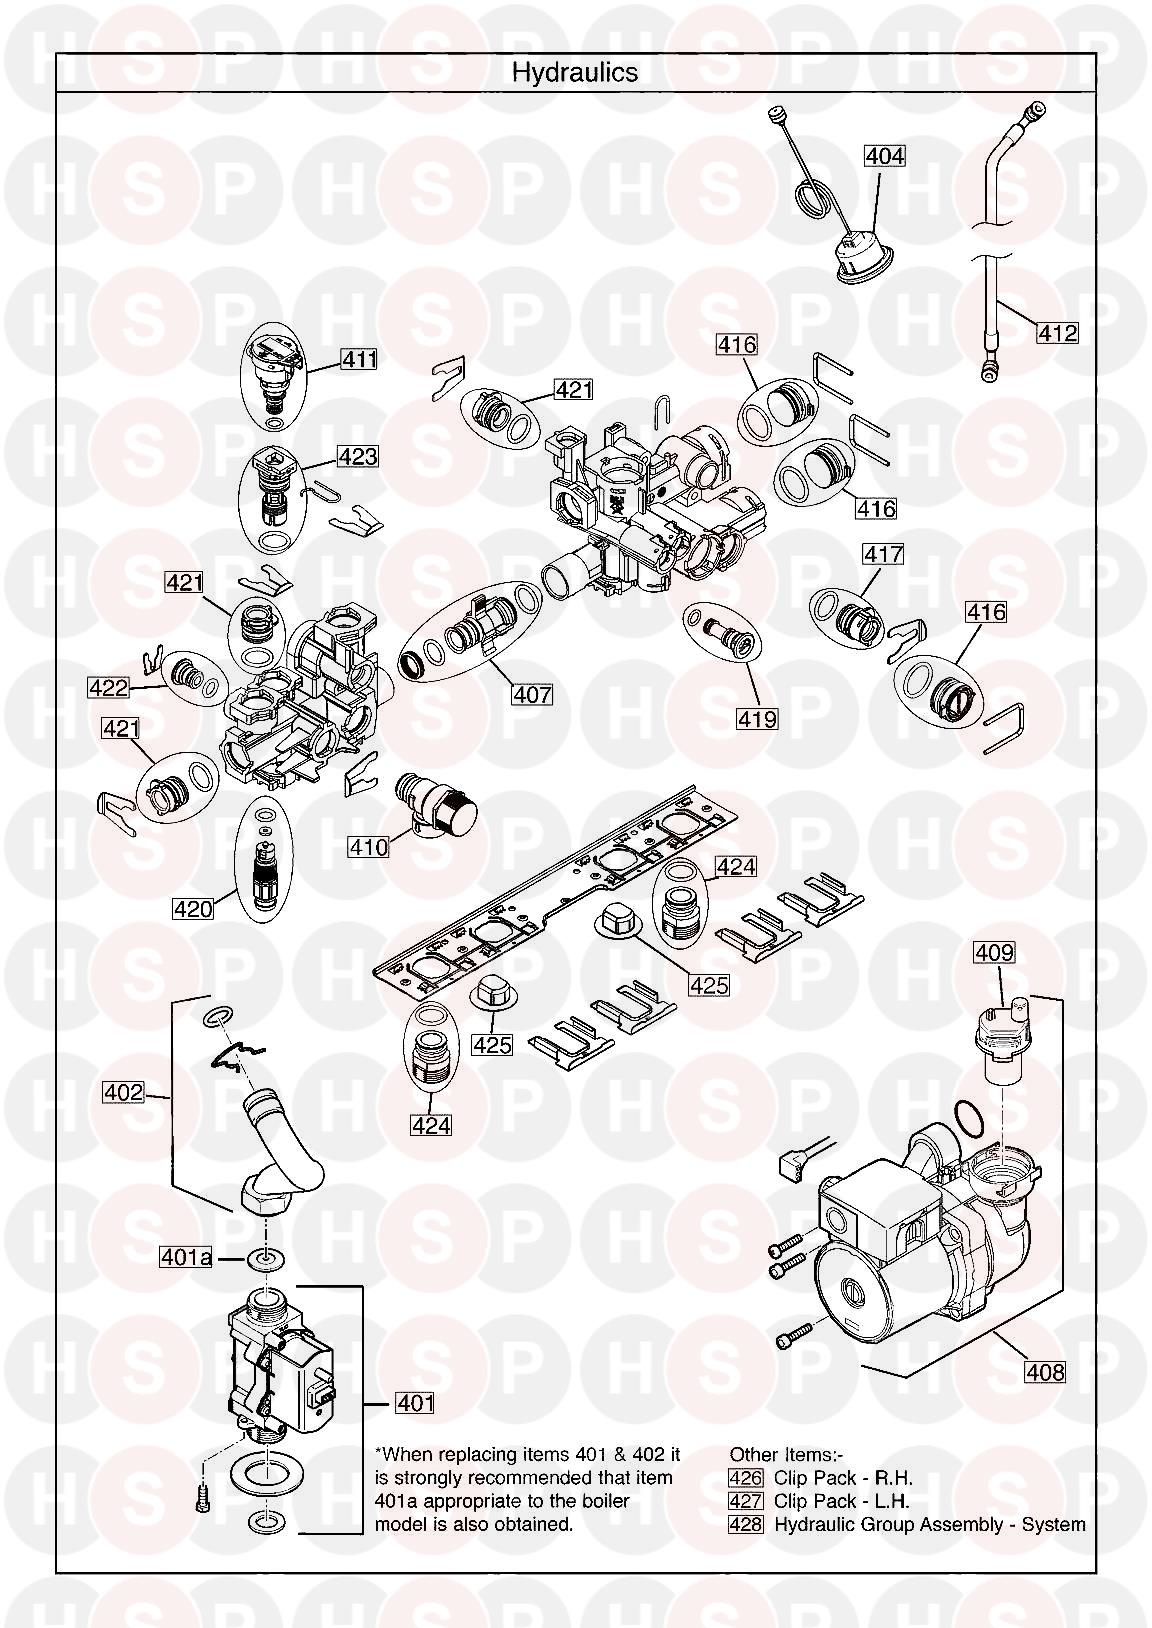 megaflo immersion heater wiring diagram with Megaflo Wiring Diagram on I51 3950 in addition I48 2978 additionally Megaflo Wiring Diagram likewise I47 2794 in addition Megaflow Wiring Diagram.